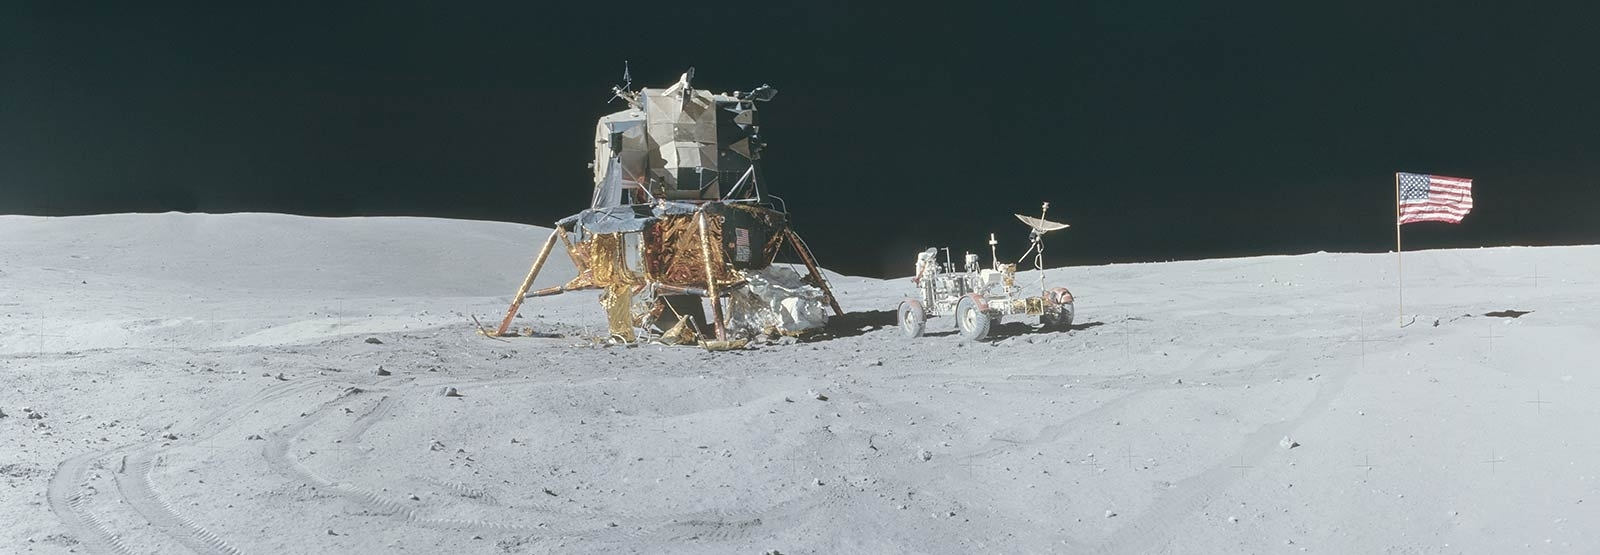 A stitch of four images, the Lunar Rover and Apollo 17